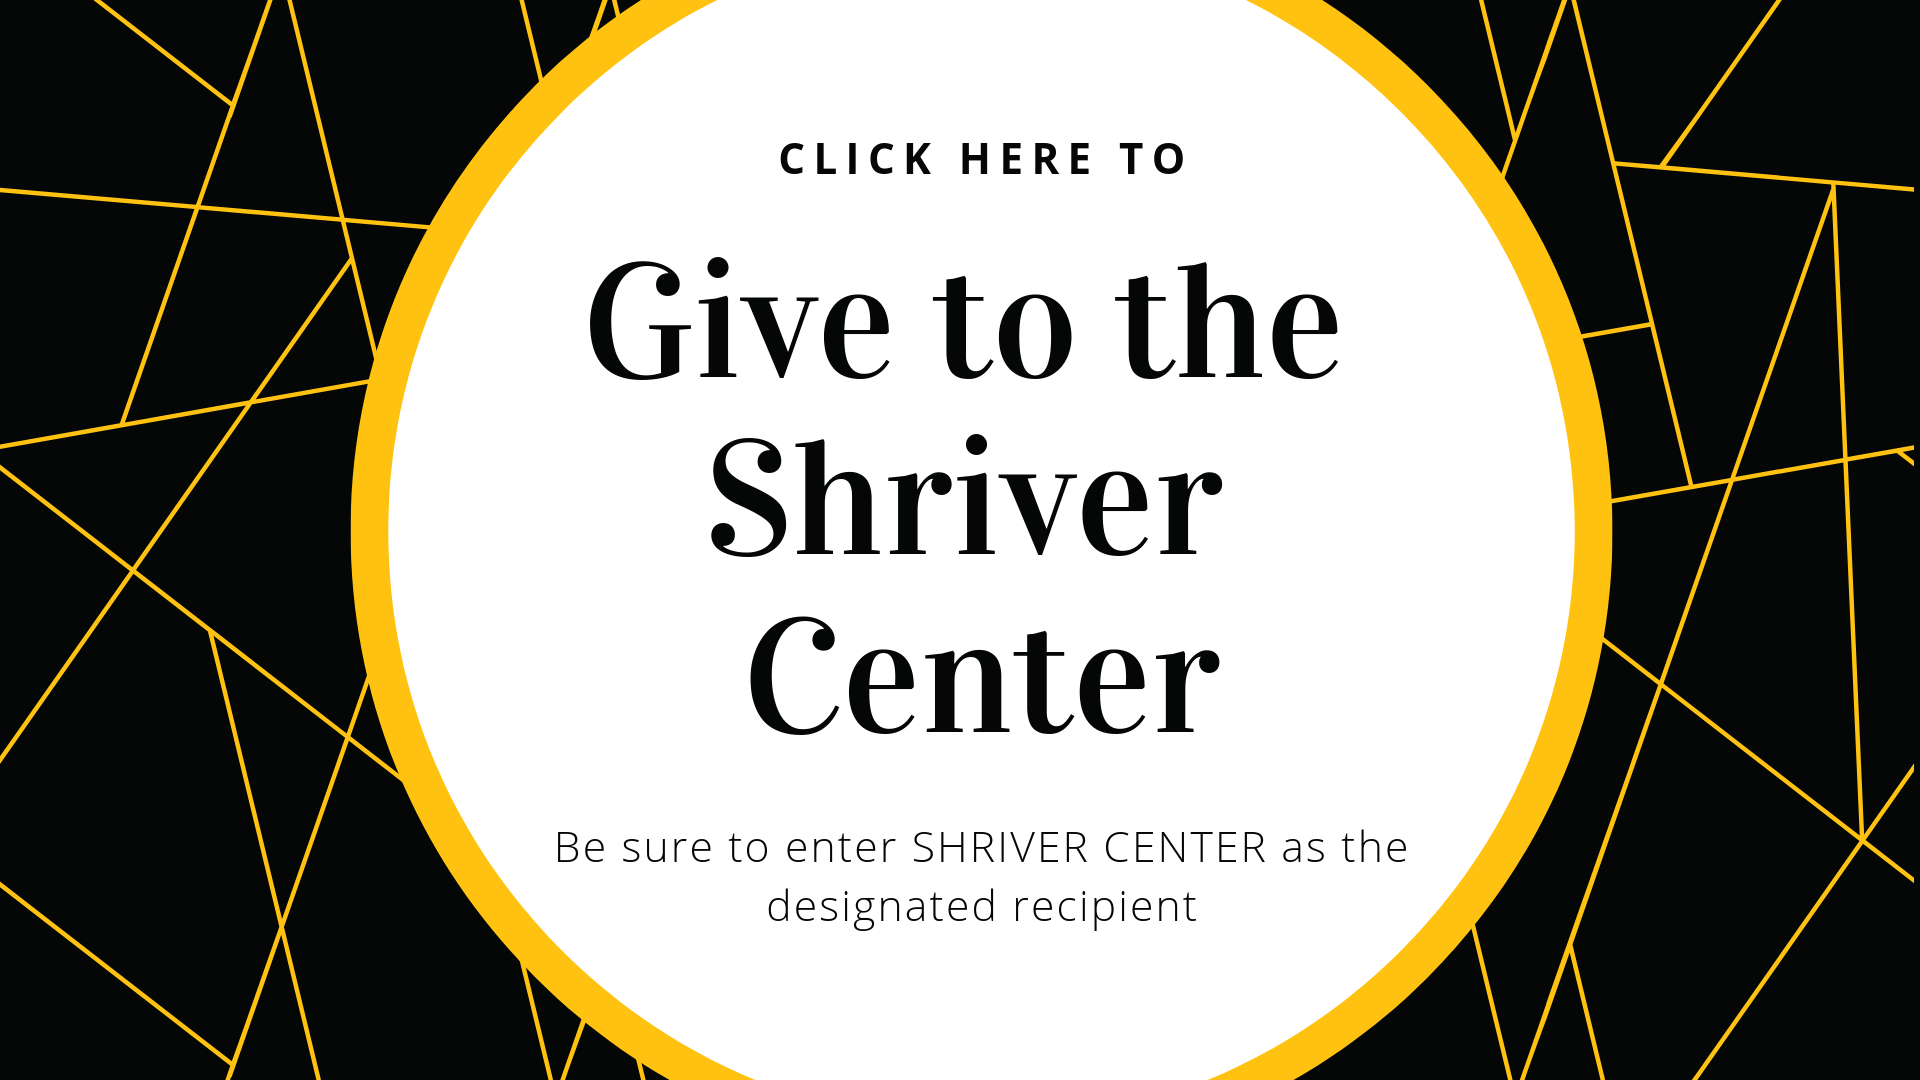 Give to the Shriver Center!